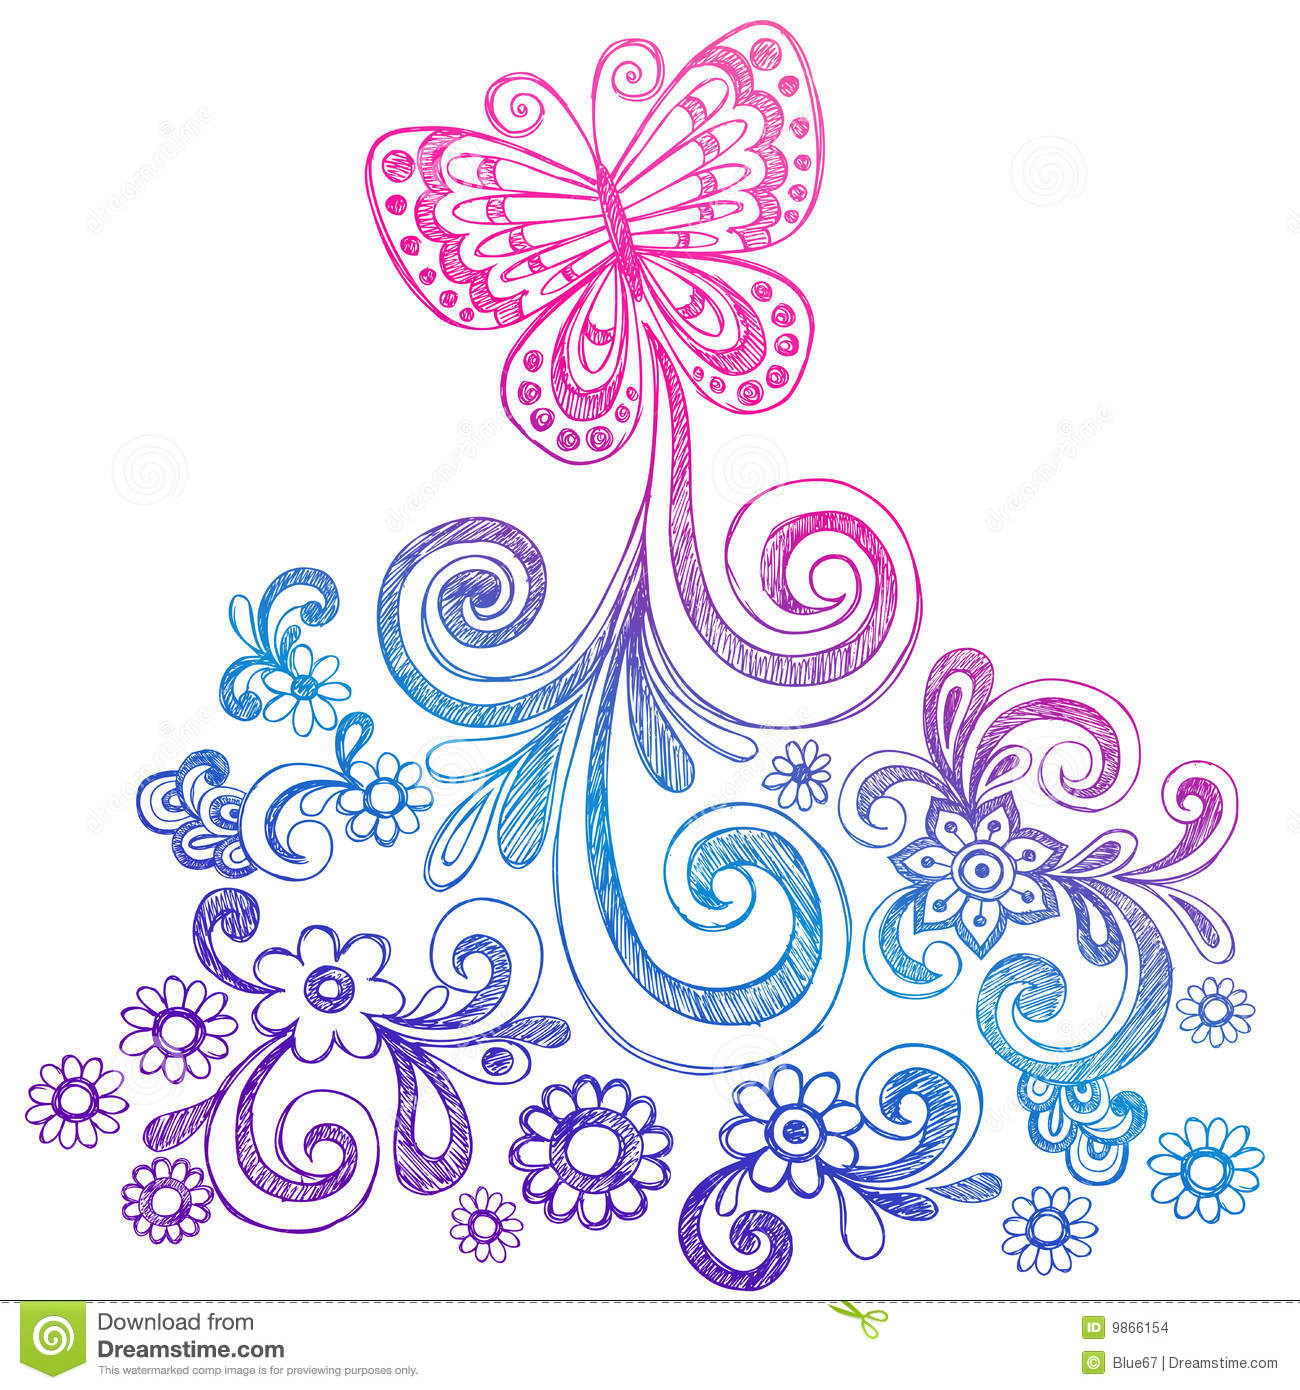 butterfly and swirls doodle vector stock vector illustration of sketchy cute 9866154. Black Bedroom Furniture Sets. Home Design Ideas